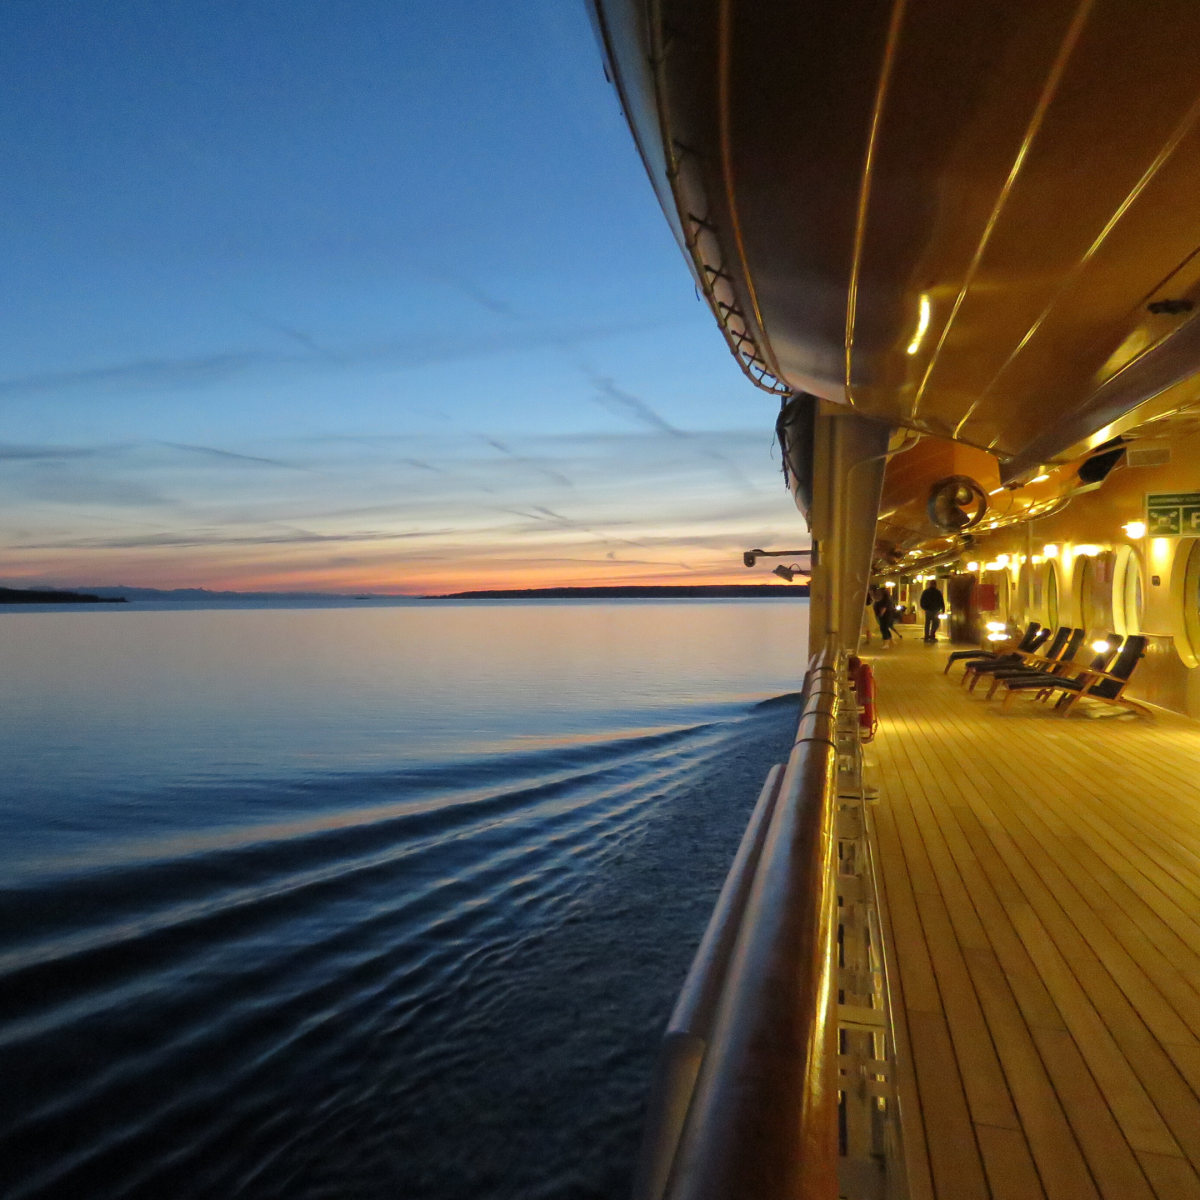 Putting in the work ahead of time will ensure that you end up on a cruise liner that suits your needs, giving you more time to rest and relax once you're onboard.